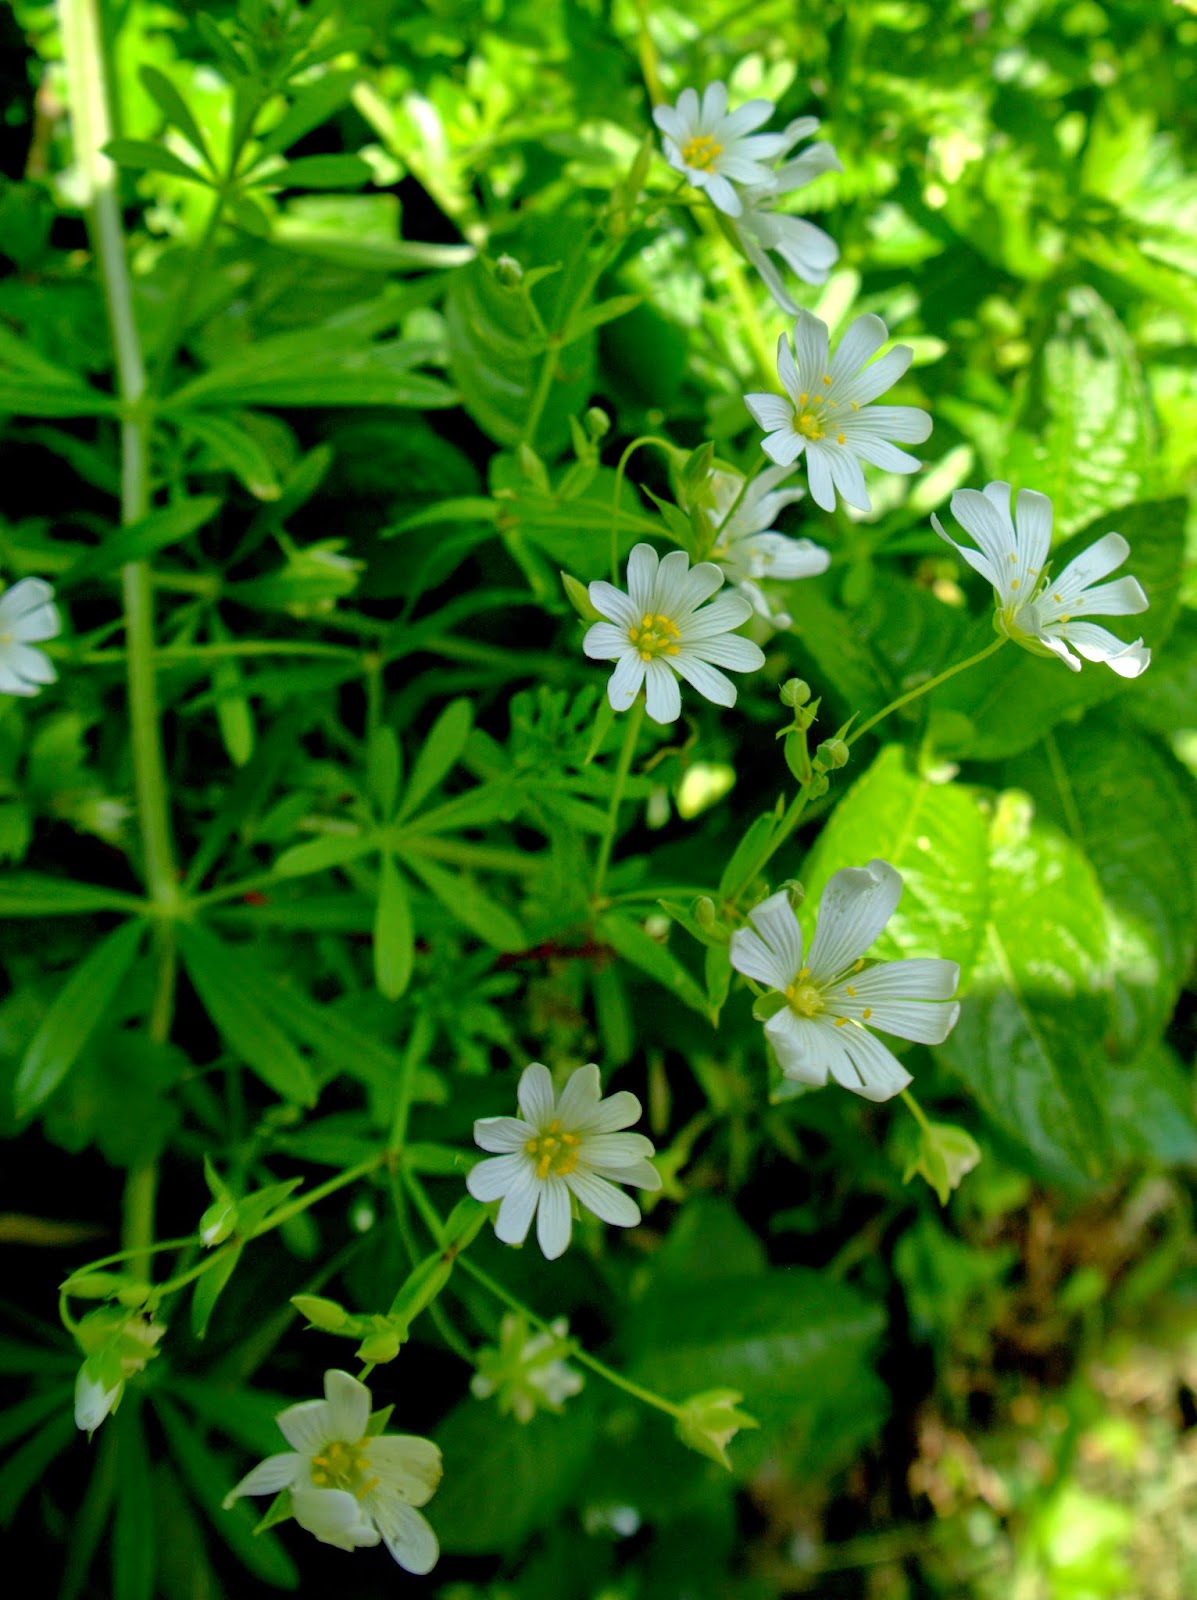 Peter Lovetts Ramblings Four Beautiful White Flowers In A